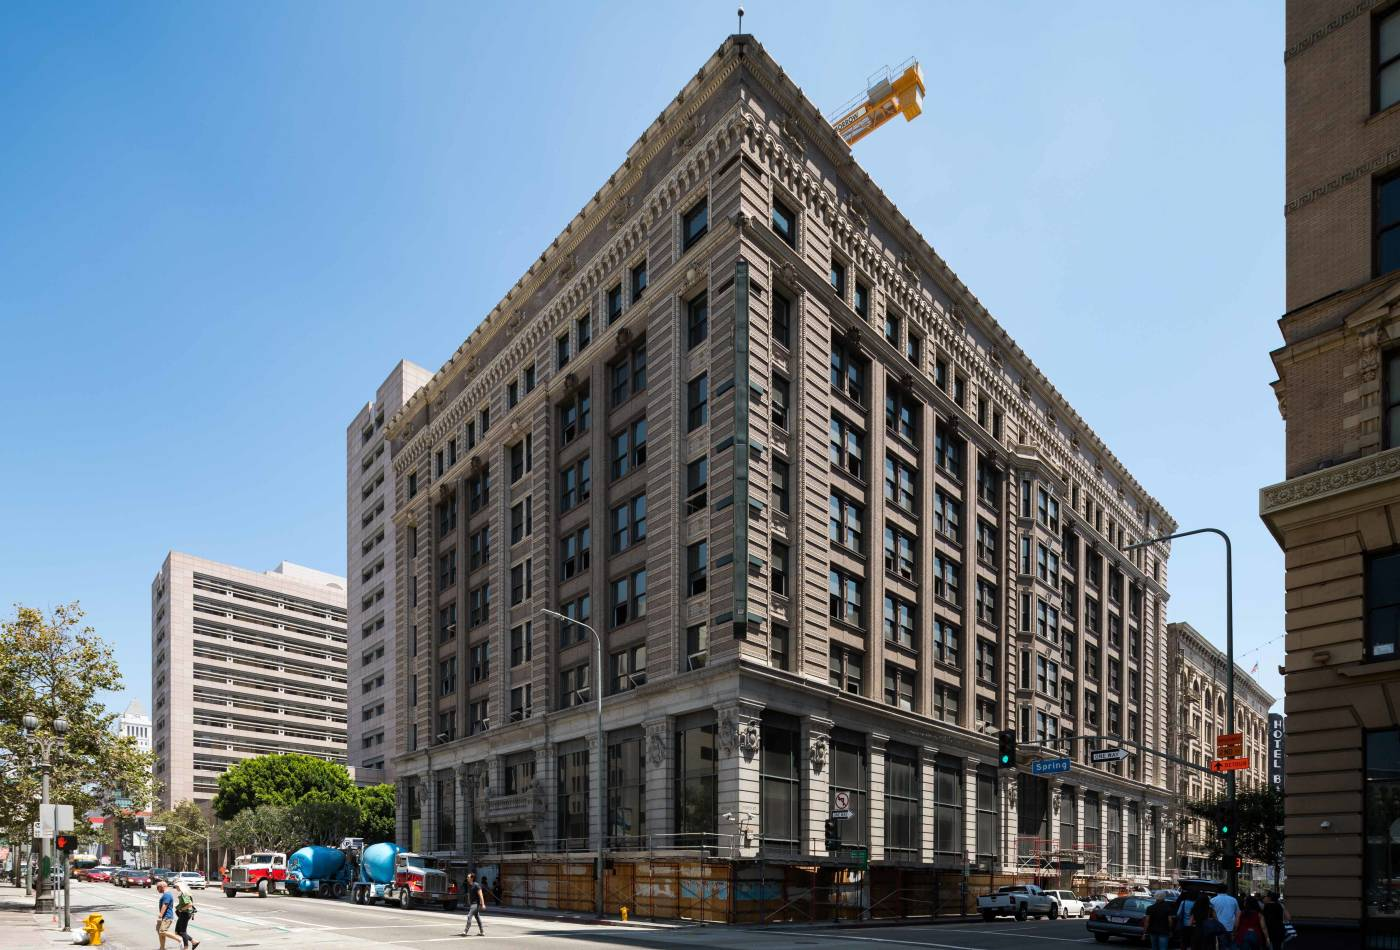 This ten-story, Beaux-Arts style building was originally a bank, constructed in 1903 for Herman W. Hellman, a German-born financier and businessman who became one of Los Angeles' wealthiest residents.